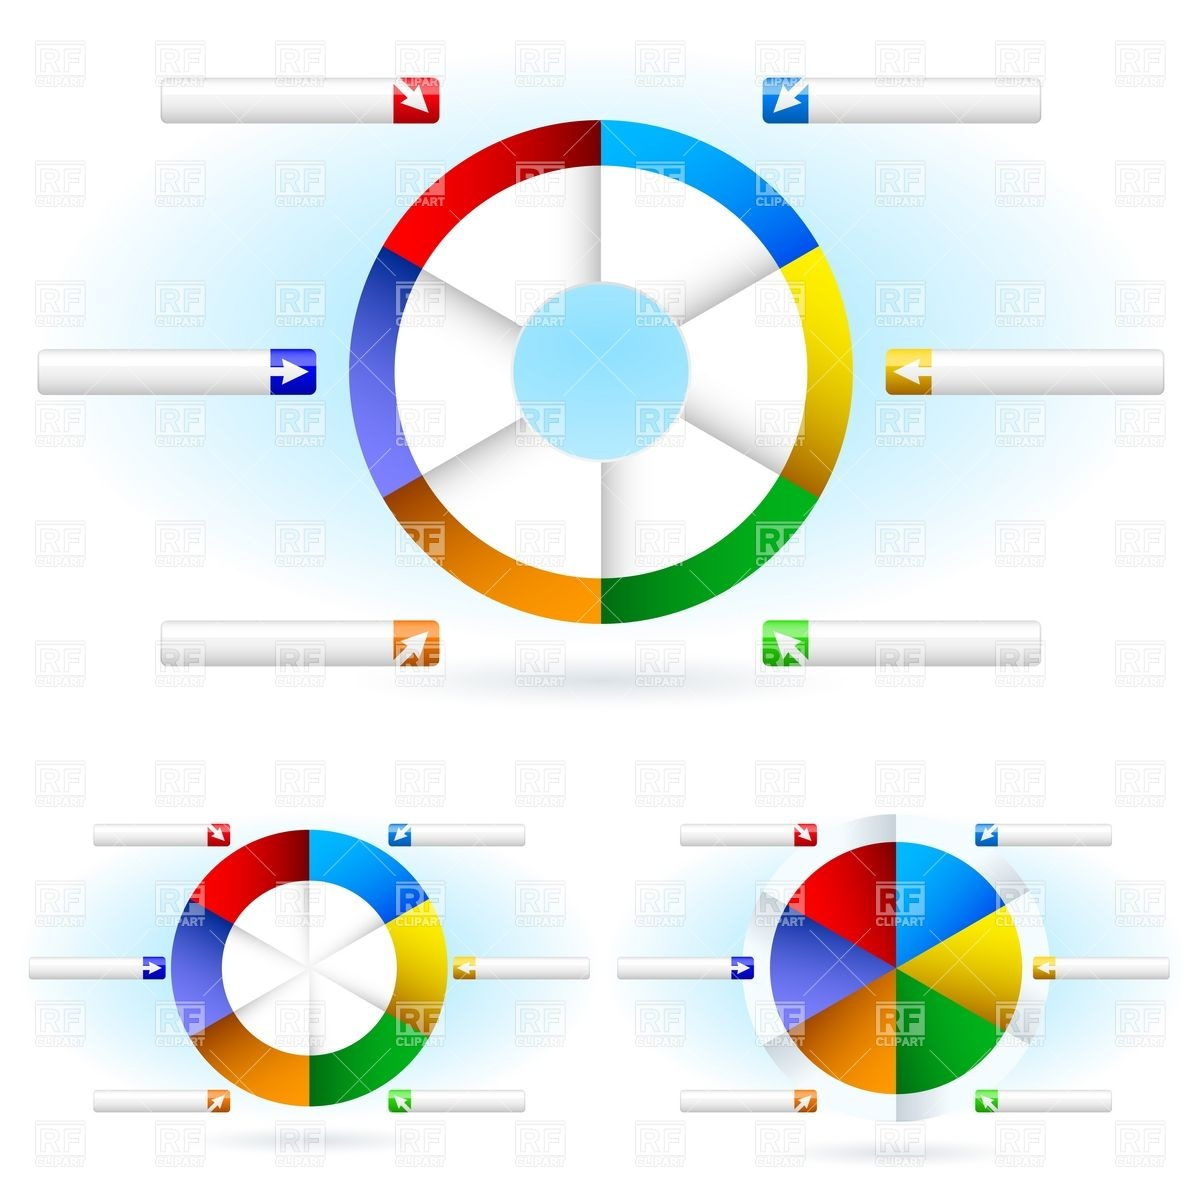 Pie Chart Blank Templates 8260 Business Finance Download Royalty